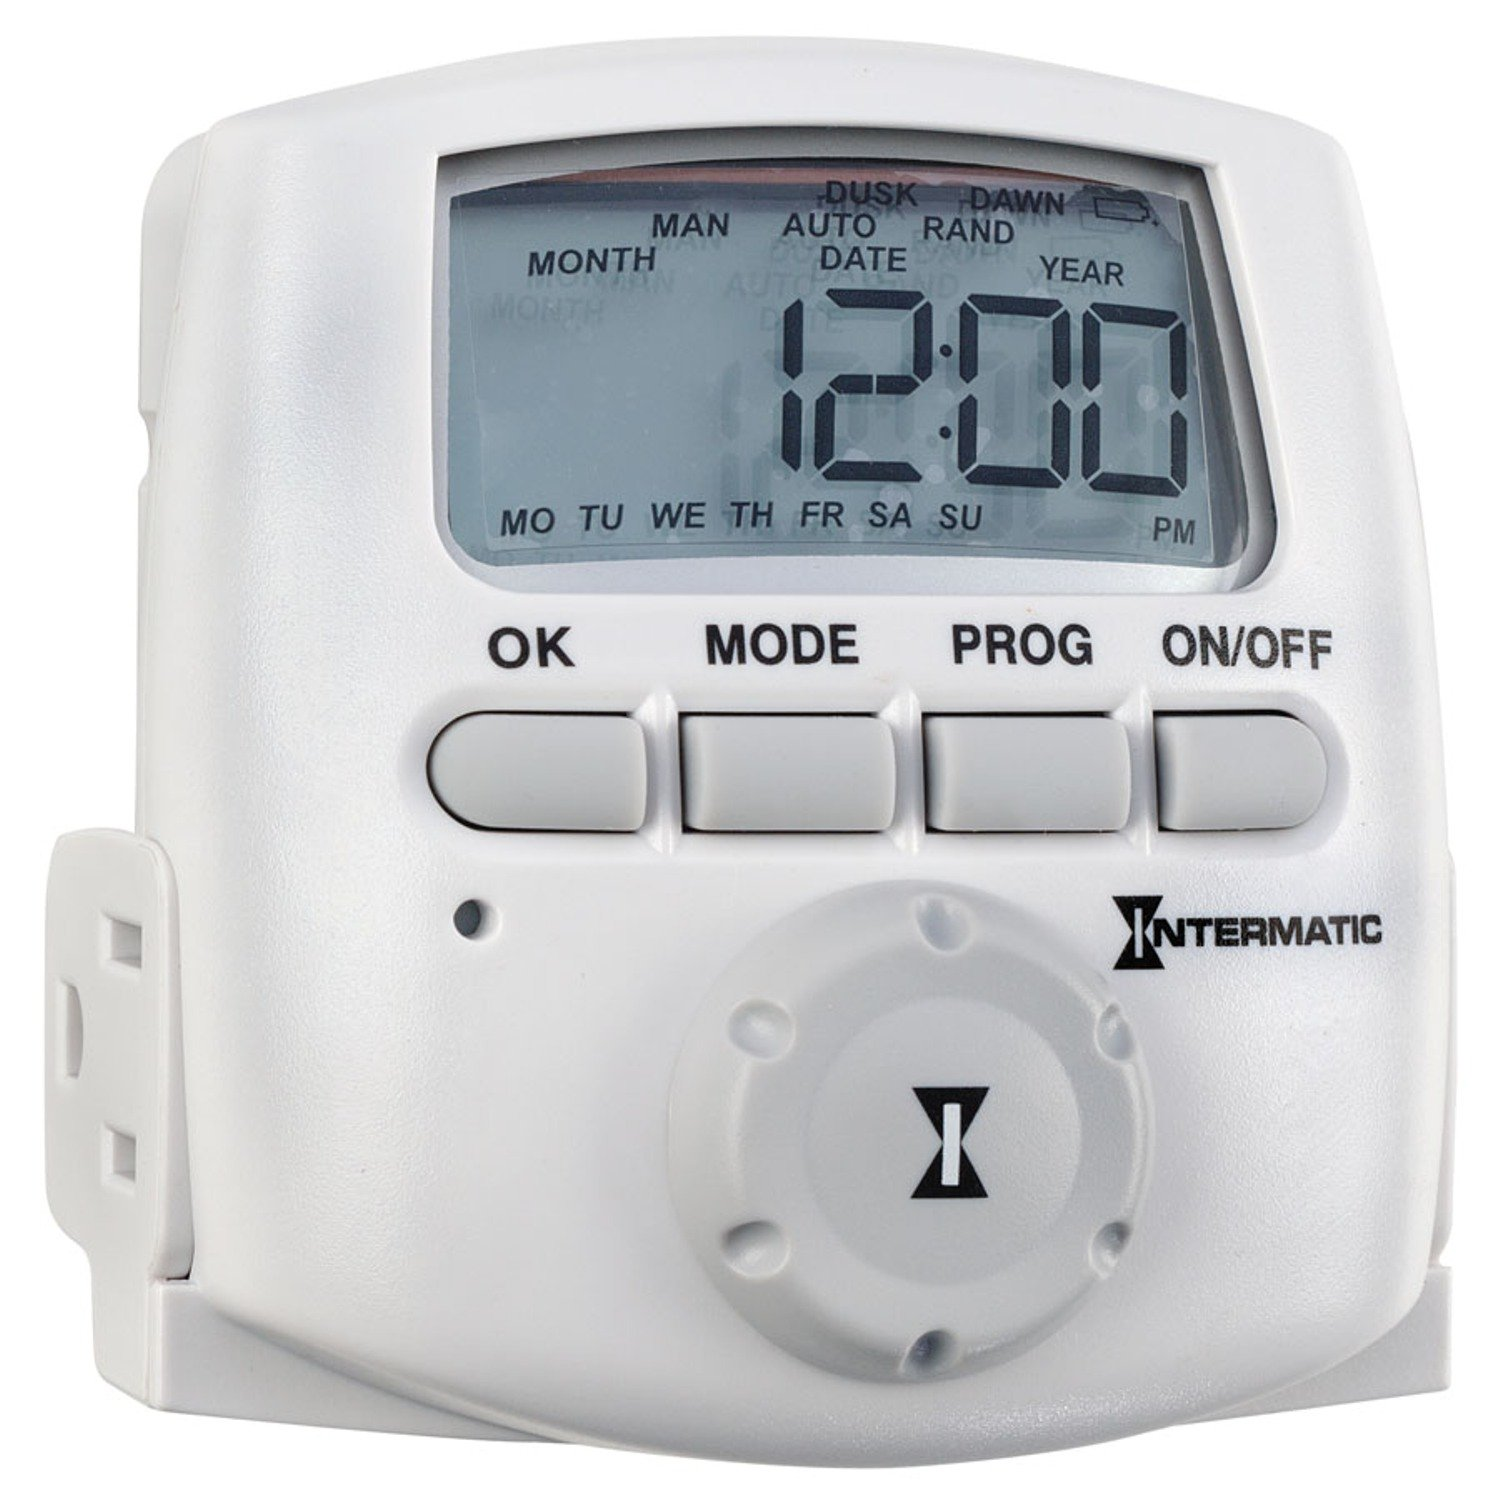 Intermatic DT620 Heavy Duty Indoor Digital Plug-In Timer, White by Intermatic